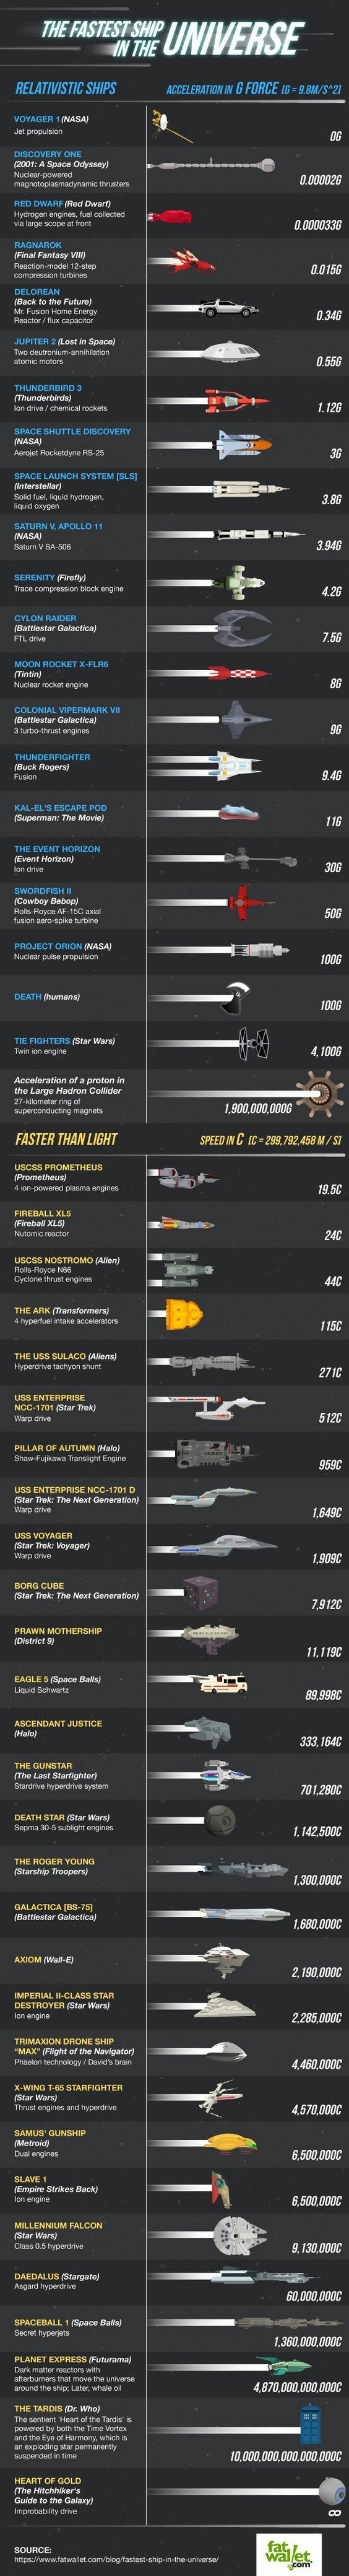 Interesting sci-fi scale of the fastest ships